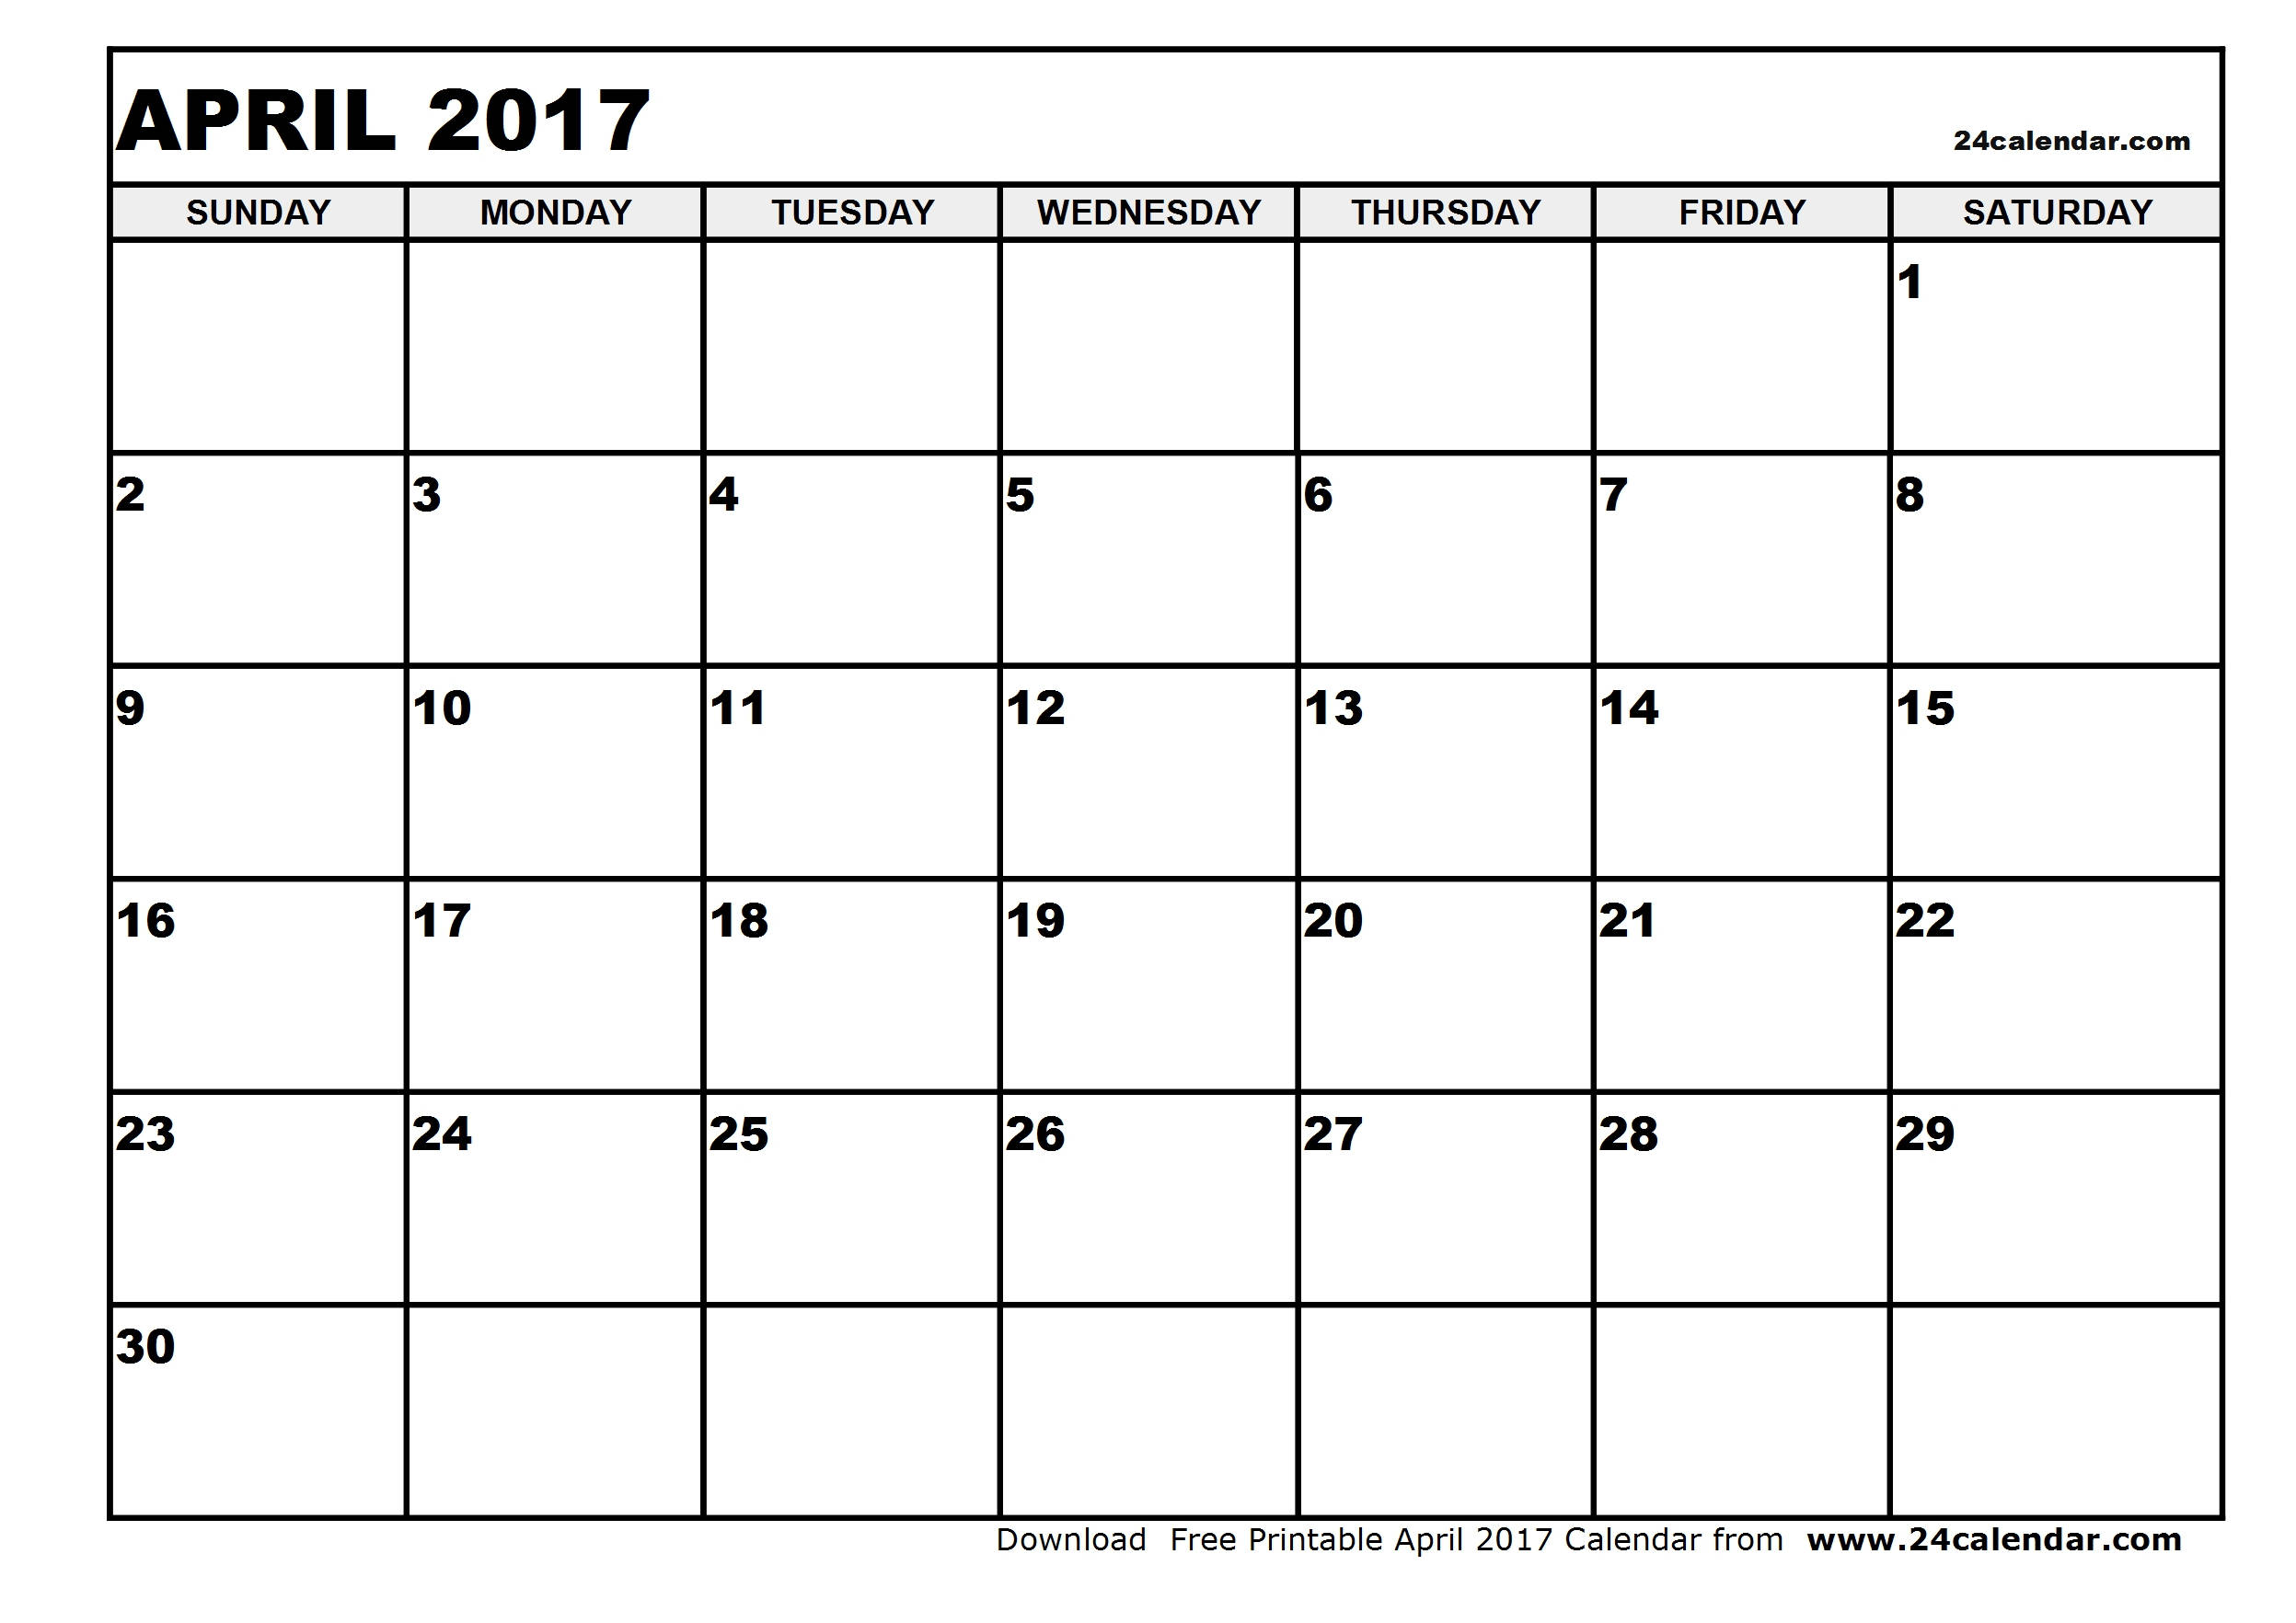 Blank April 2017 Calendar in Printable format.